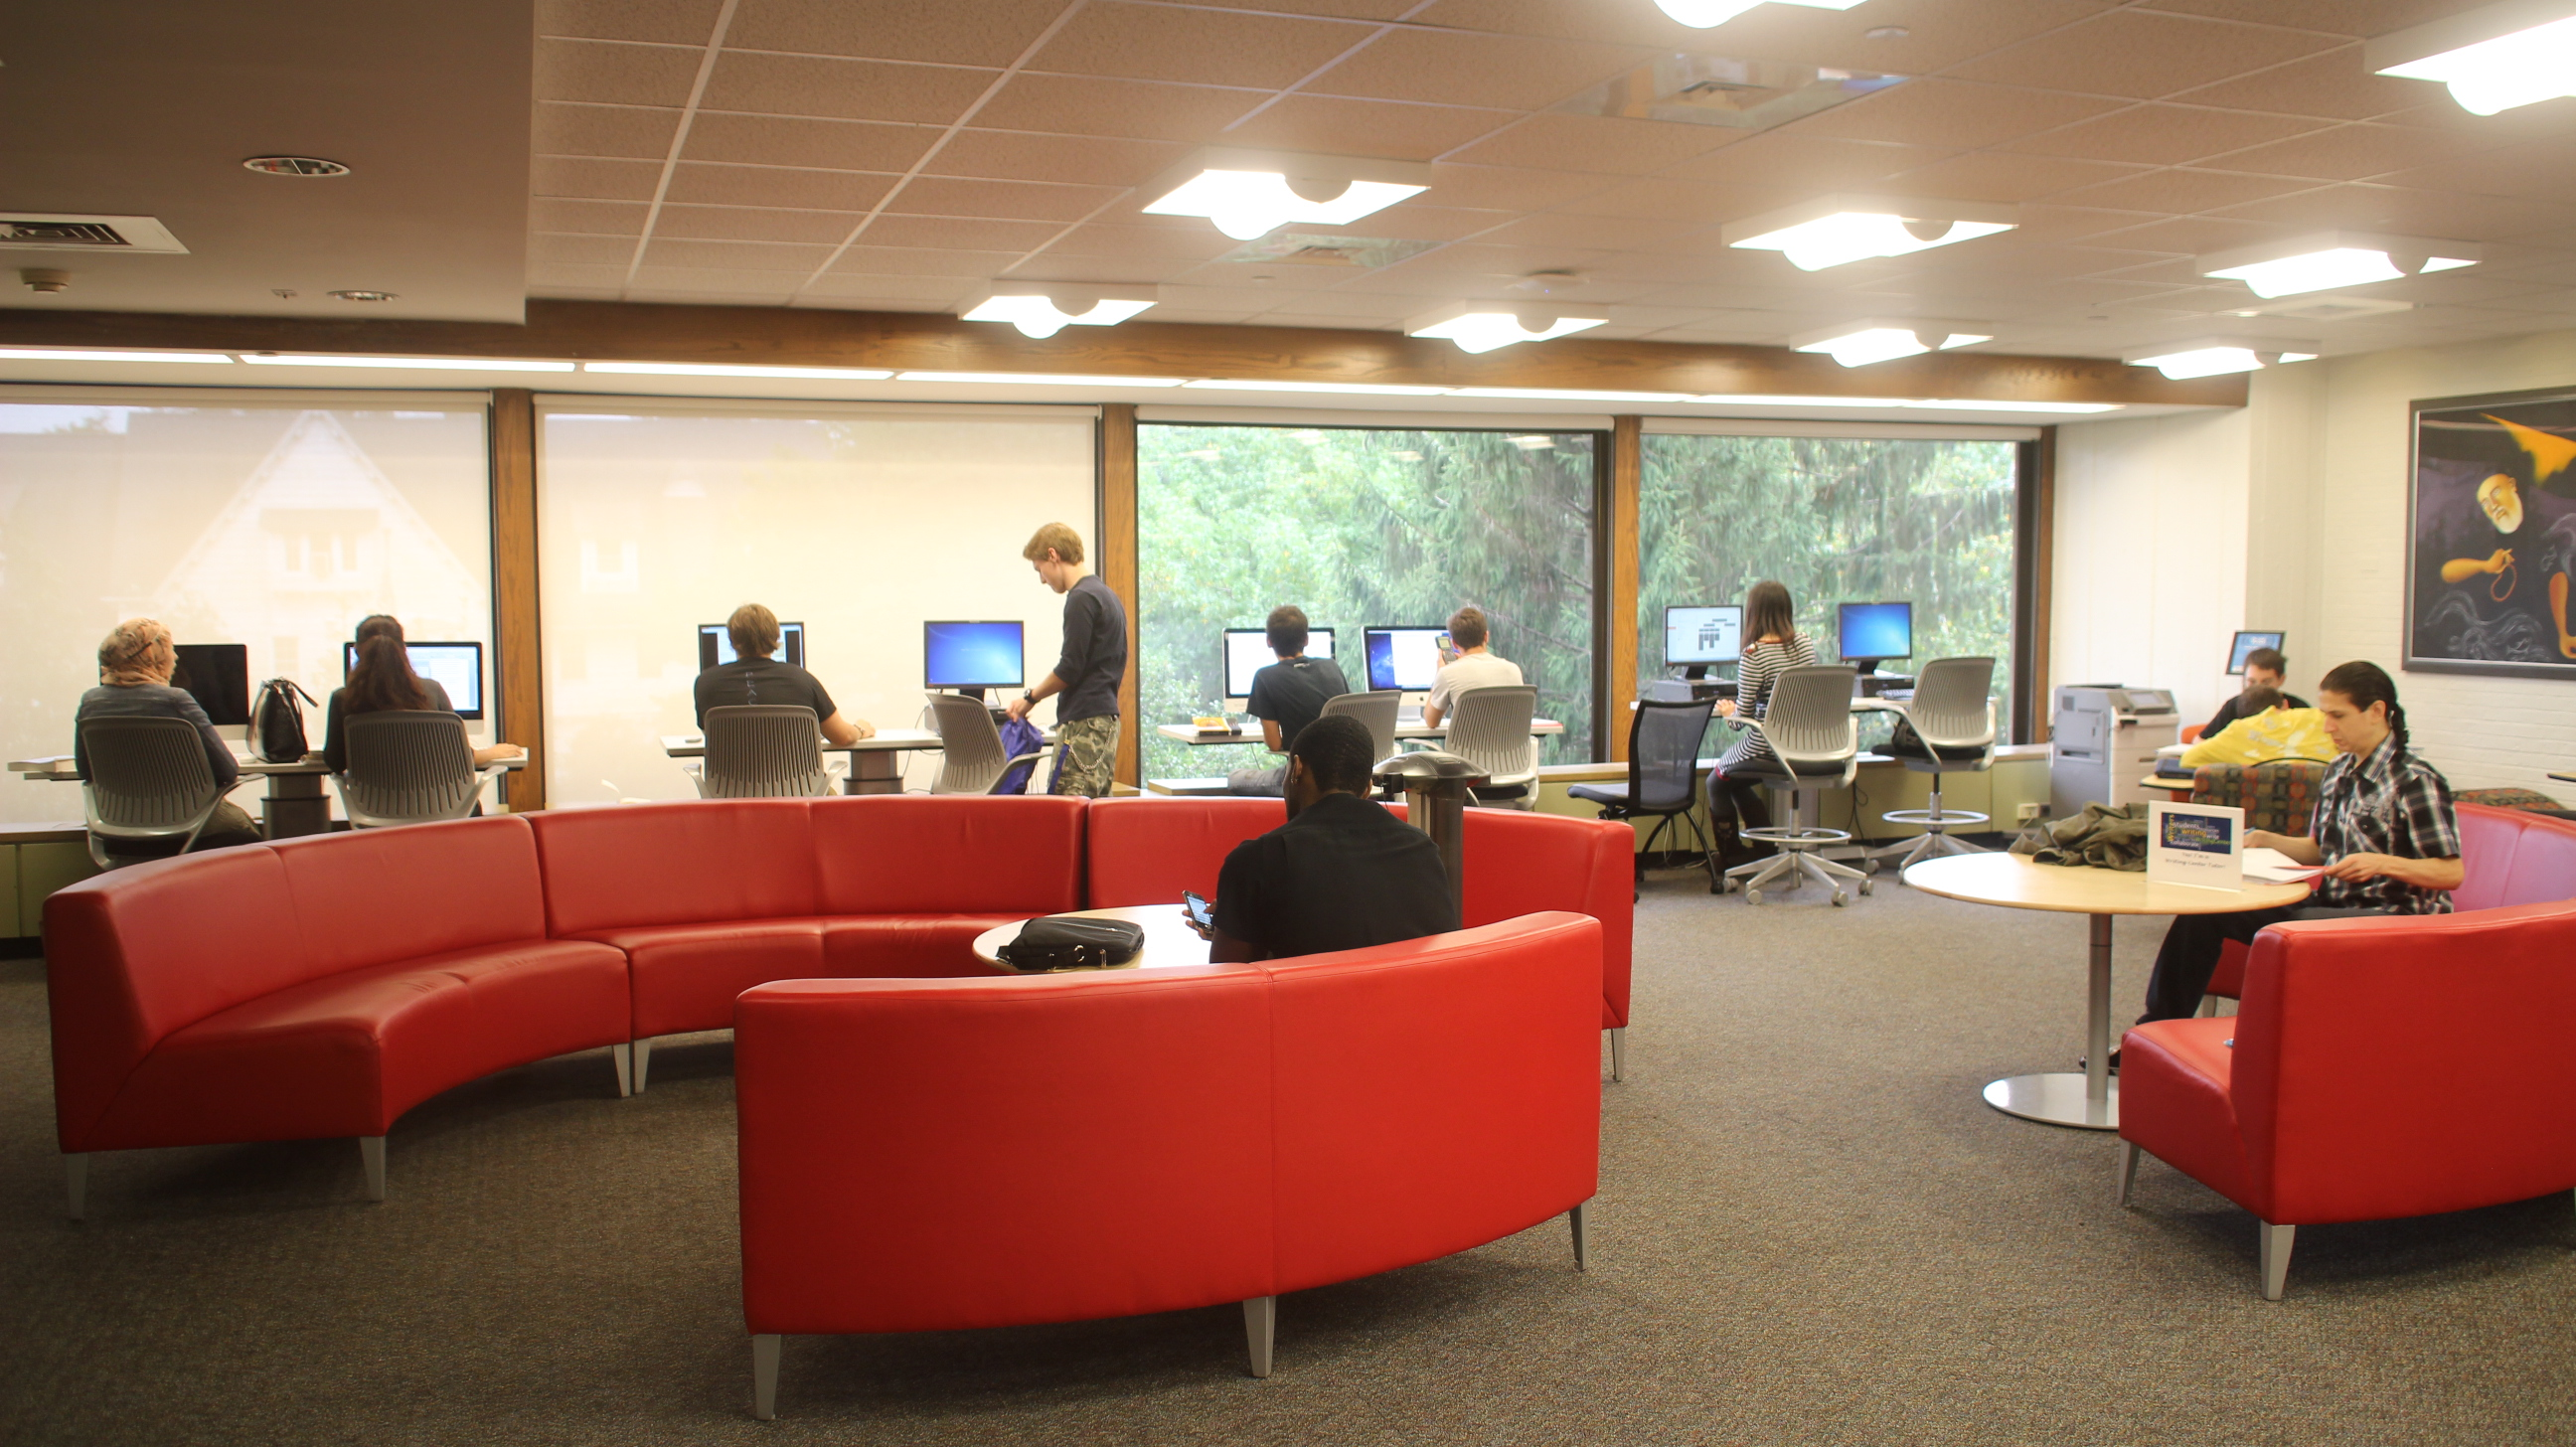 Axinn Library, Collaborative Learning Center